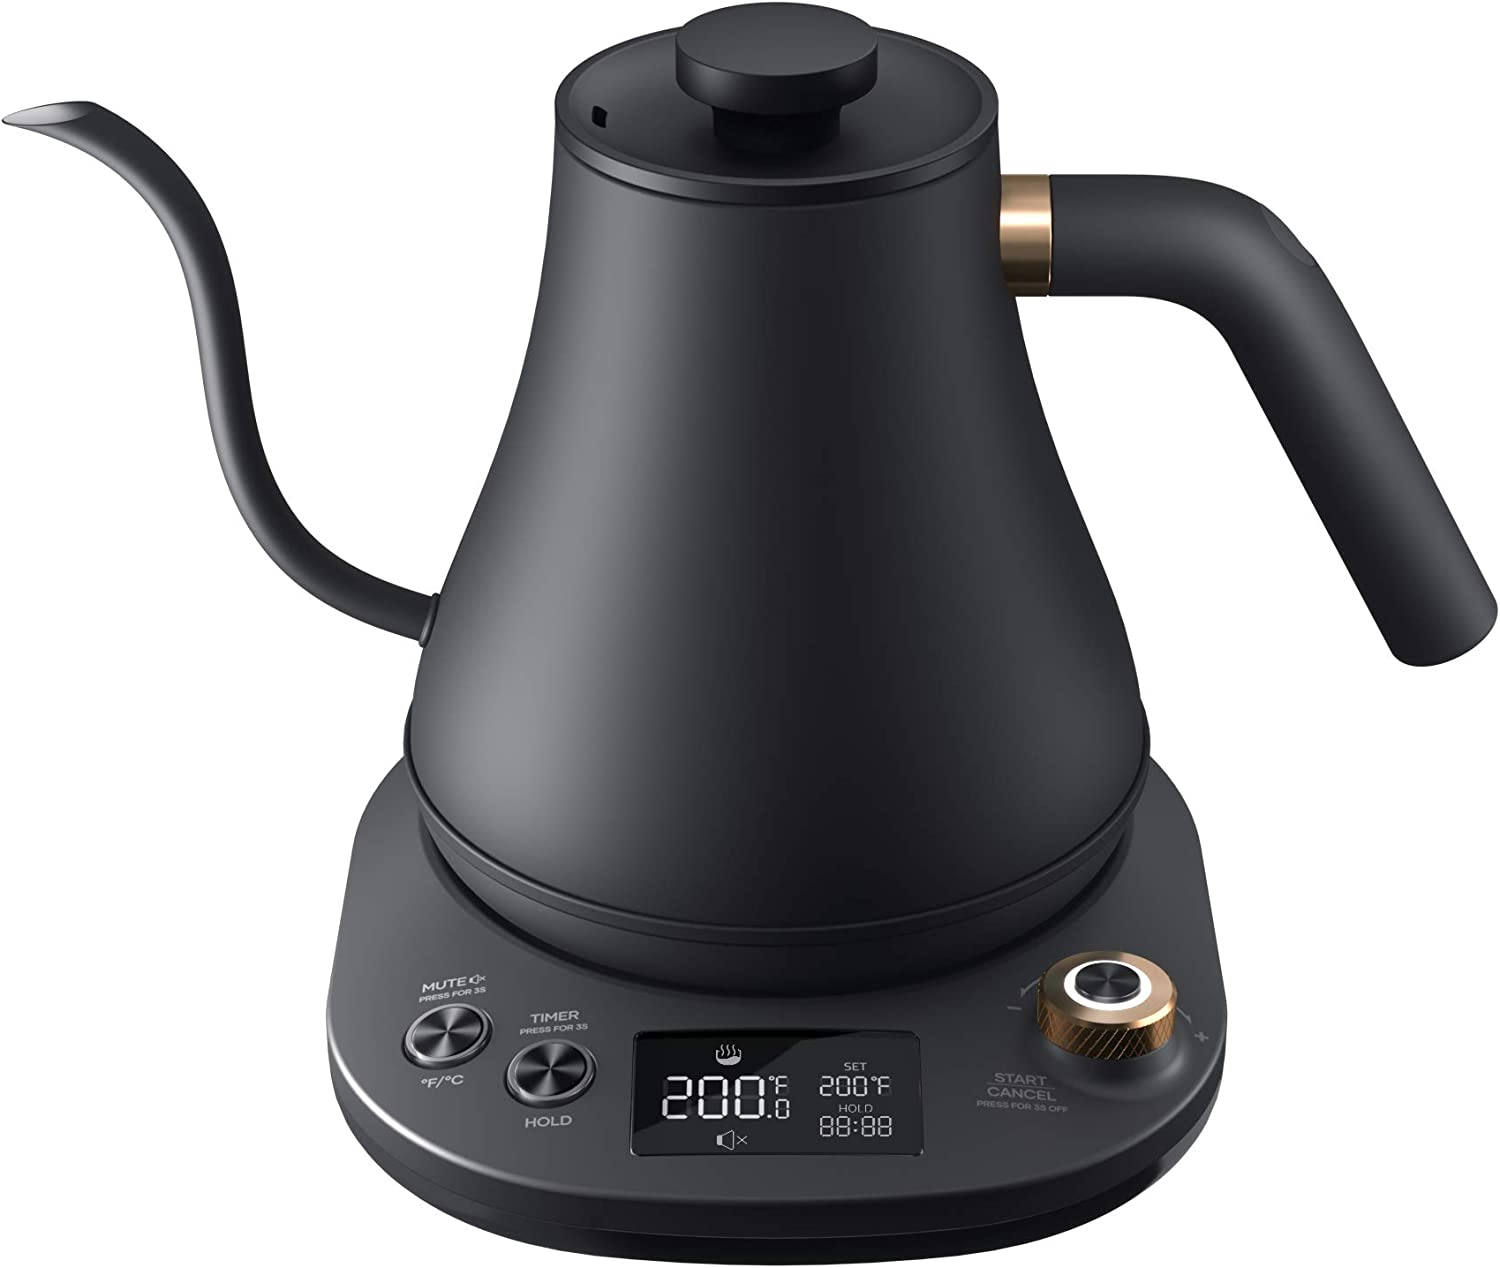 Willsence Gooseneck Kettle Temperature Control, Pour Over Electric Kettle for Coffee and Tea, 100% Stainless Steel Inner, 1200W Rapid Heating, 0.8L, Built-in Stopwatch